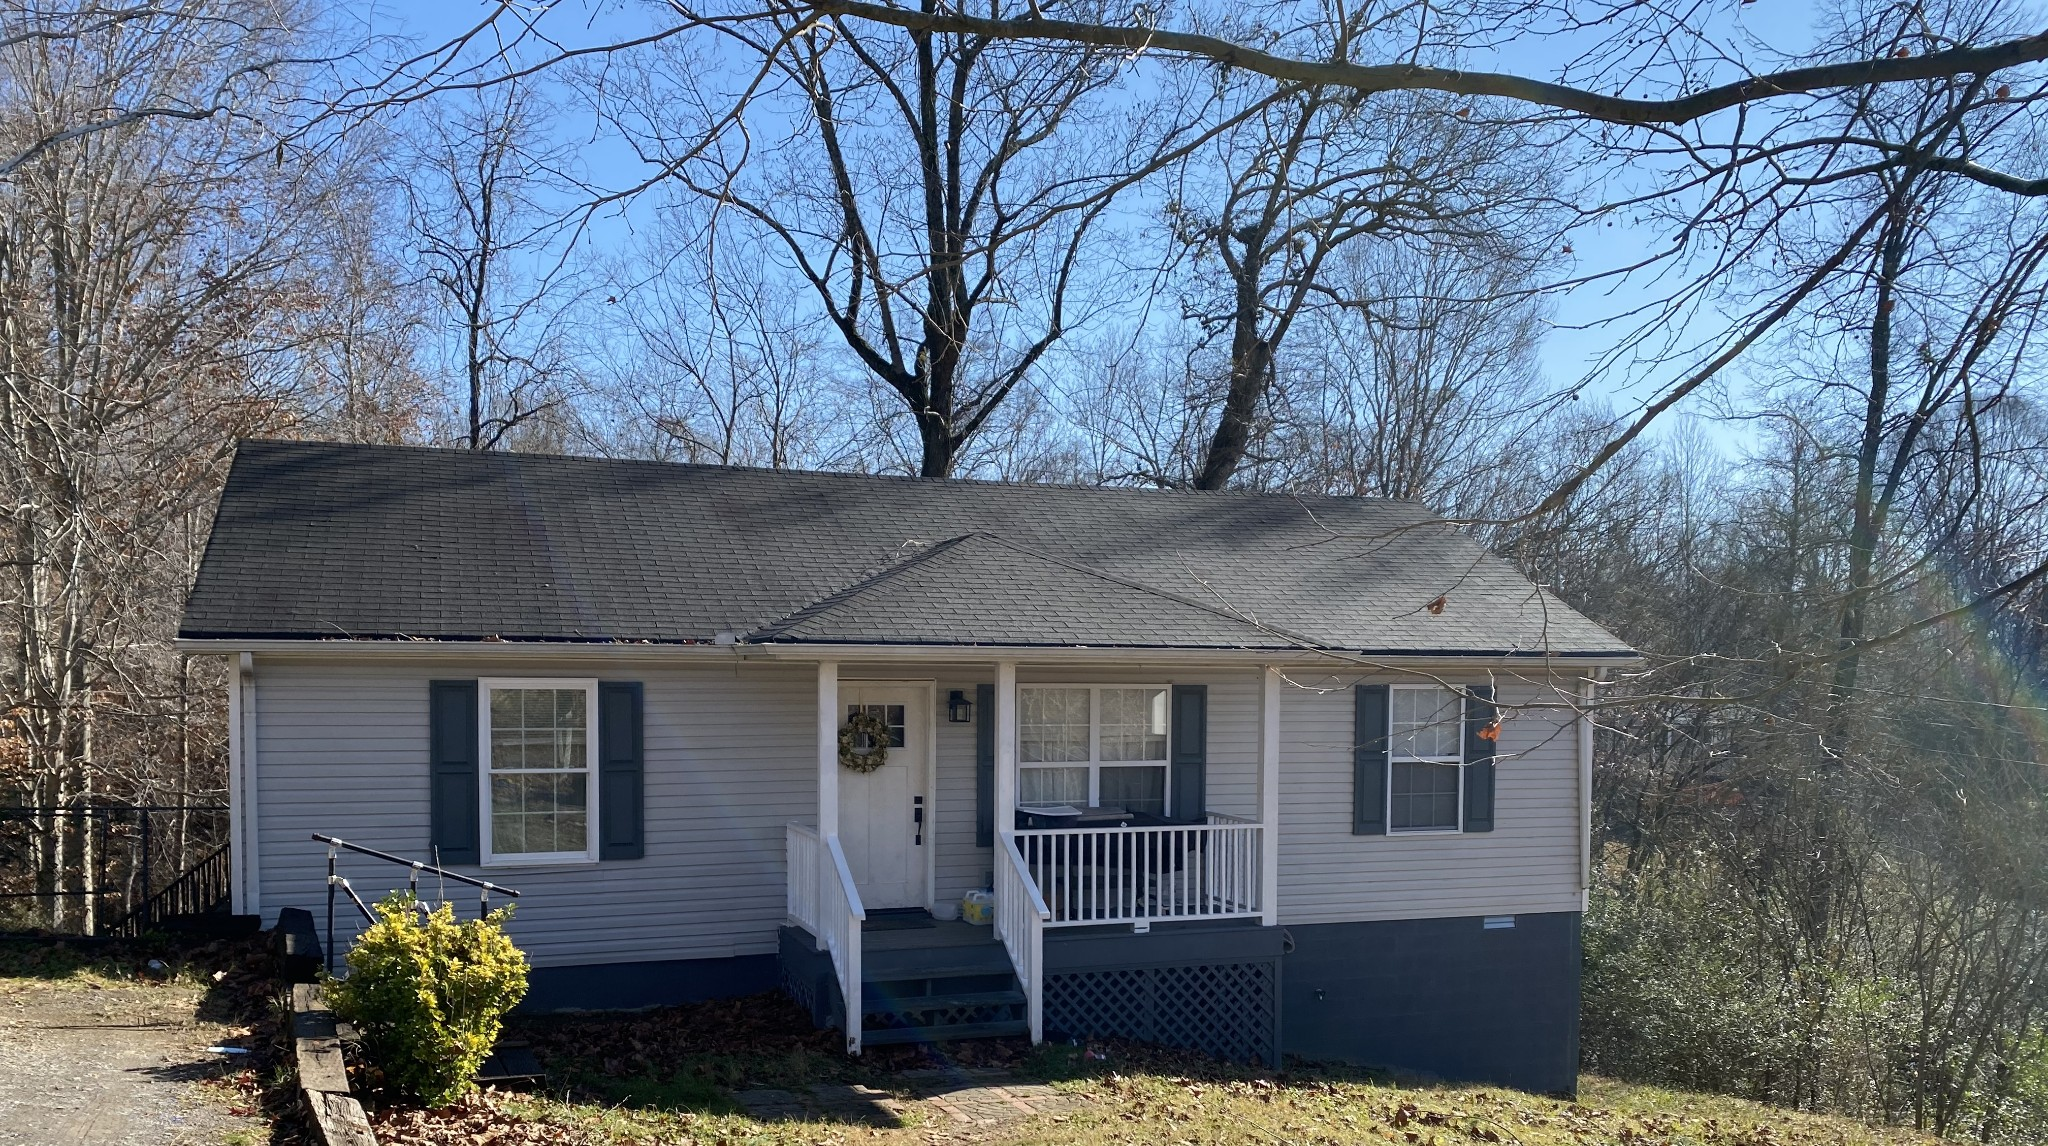 Charming 3 bed 2 bath with a walk out basement/crawlspace that could easily be finished in for addit